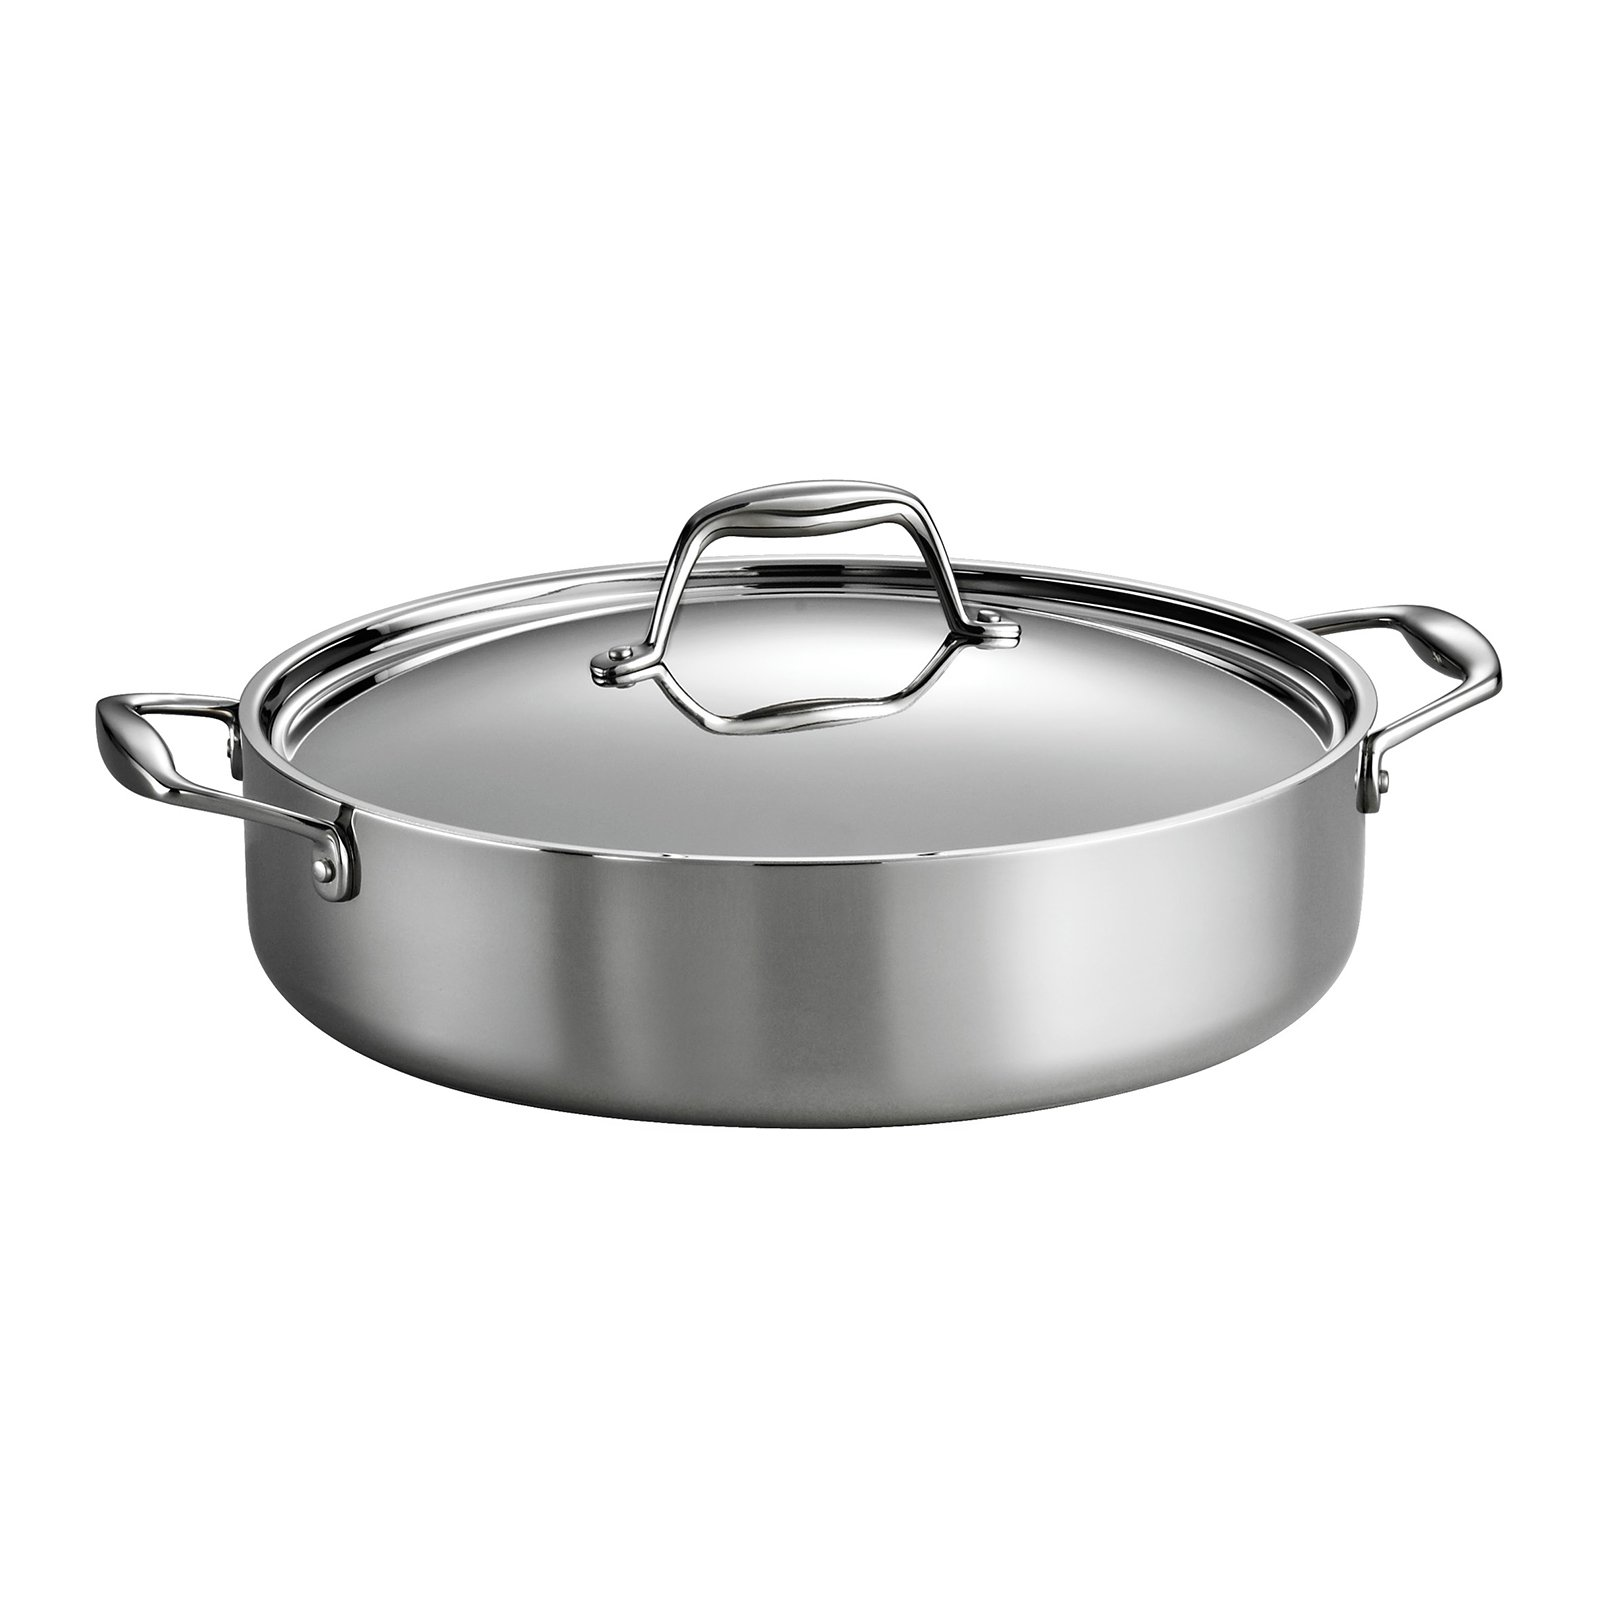 Tramontina Gourmet Tri-Ply Clad 5-Quart Covered Braiser by Tramontina